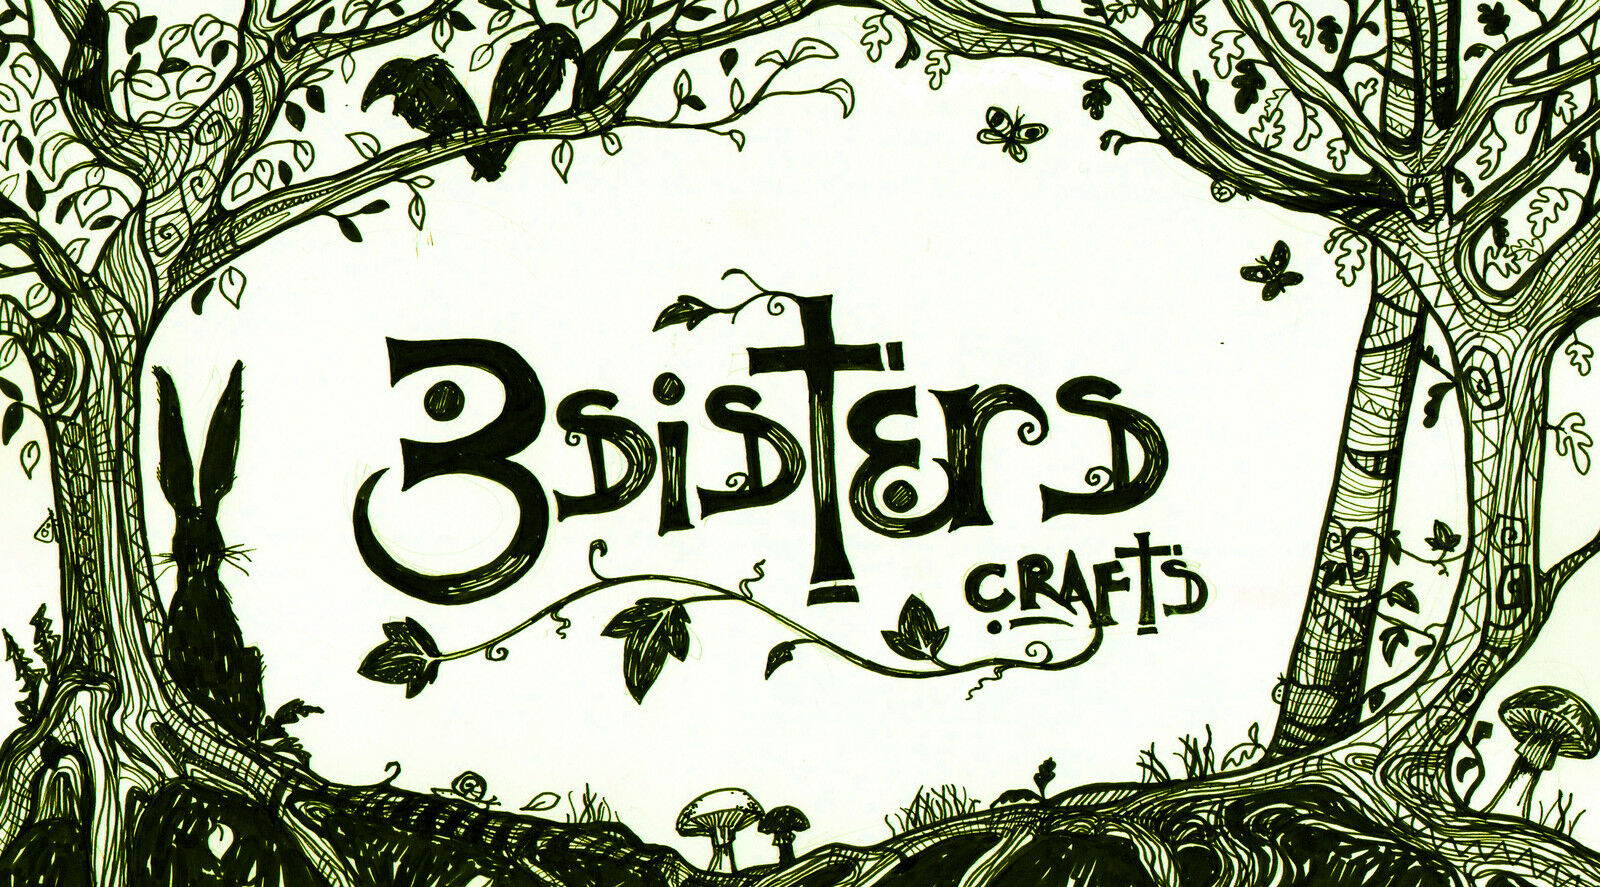 3Sisters Crafts